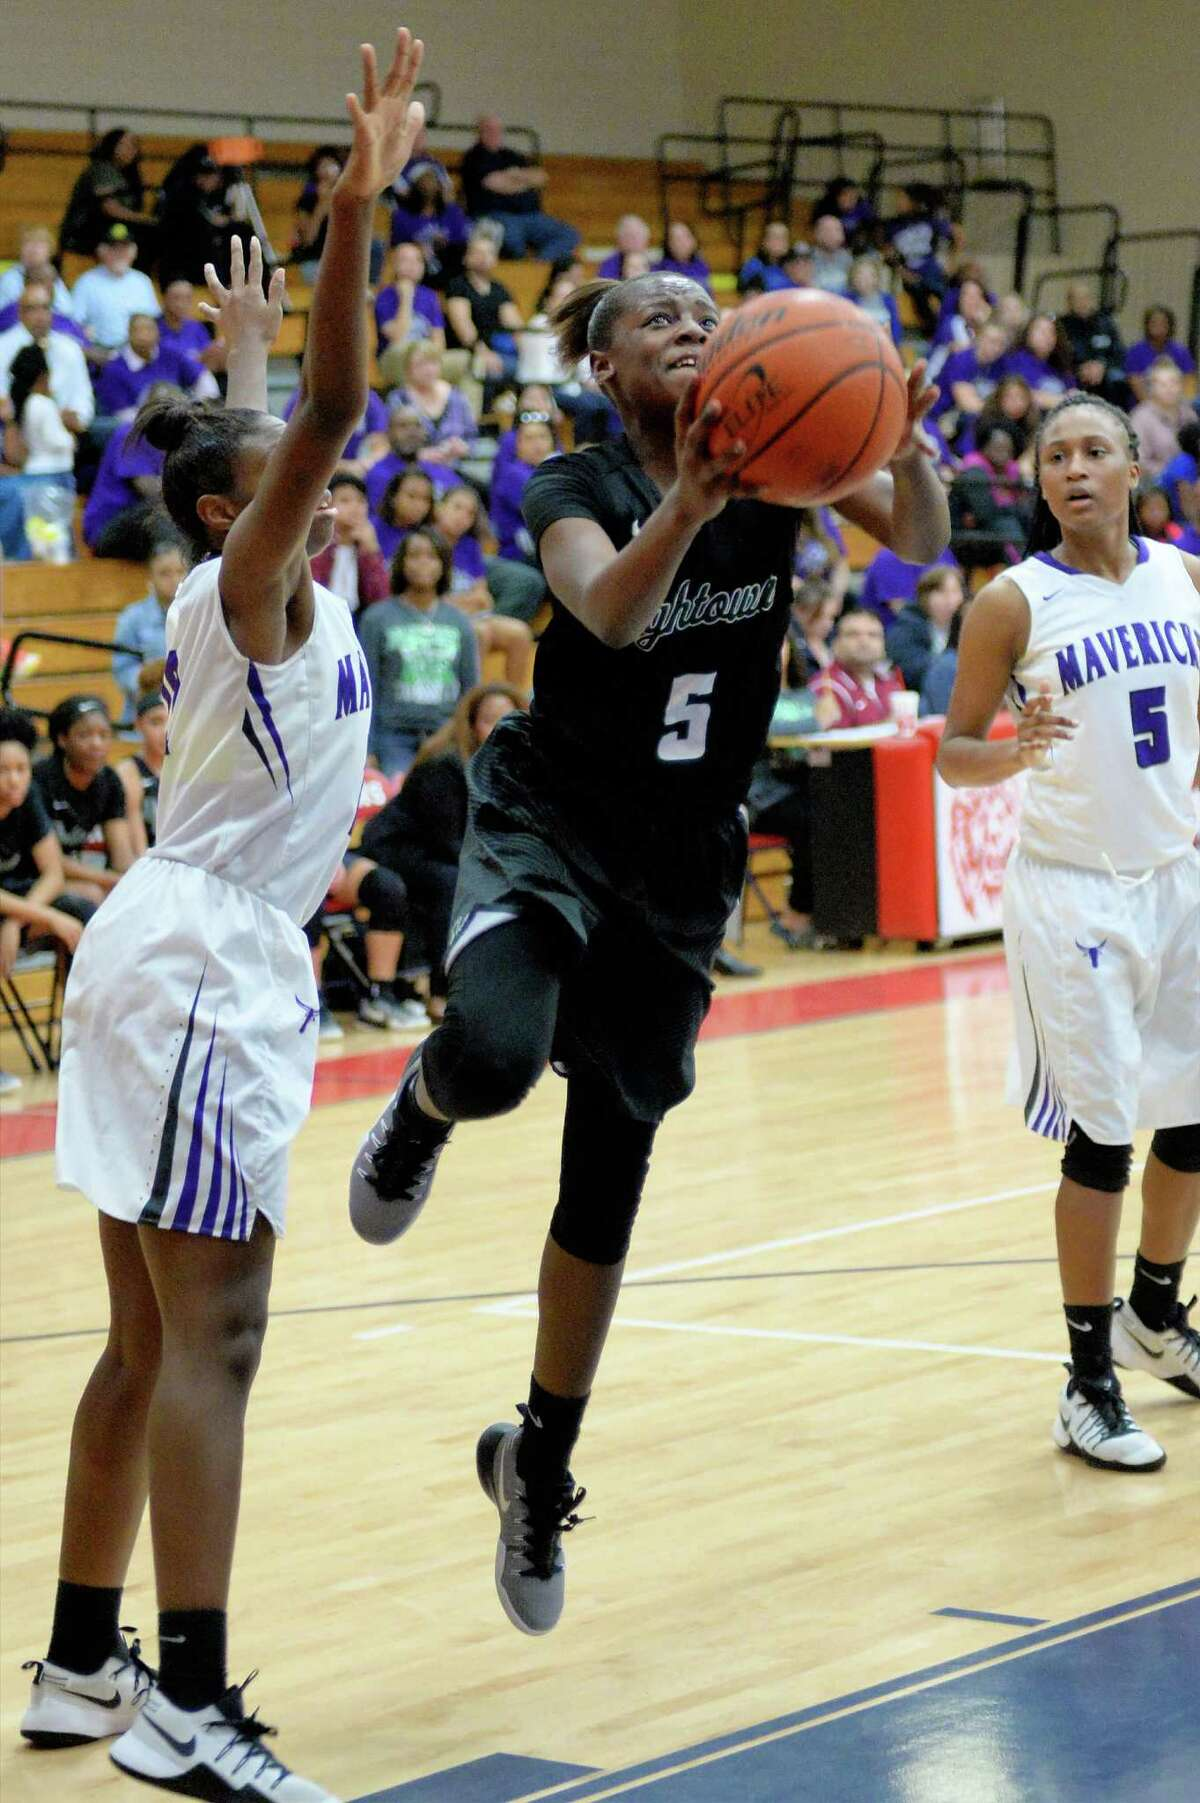 Taelor Purvis (5) of Hightower attempts a shot during the second half of the girls Bi-District playoff game between the Hightower Hurricanes and the Morton Ranch Mavericks on Monday February 13, 2017 at Alief Taylor High School, Houston, TX.